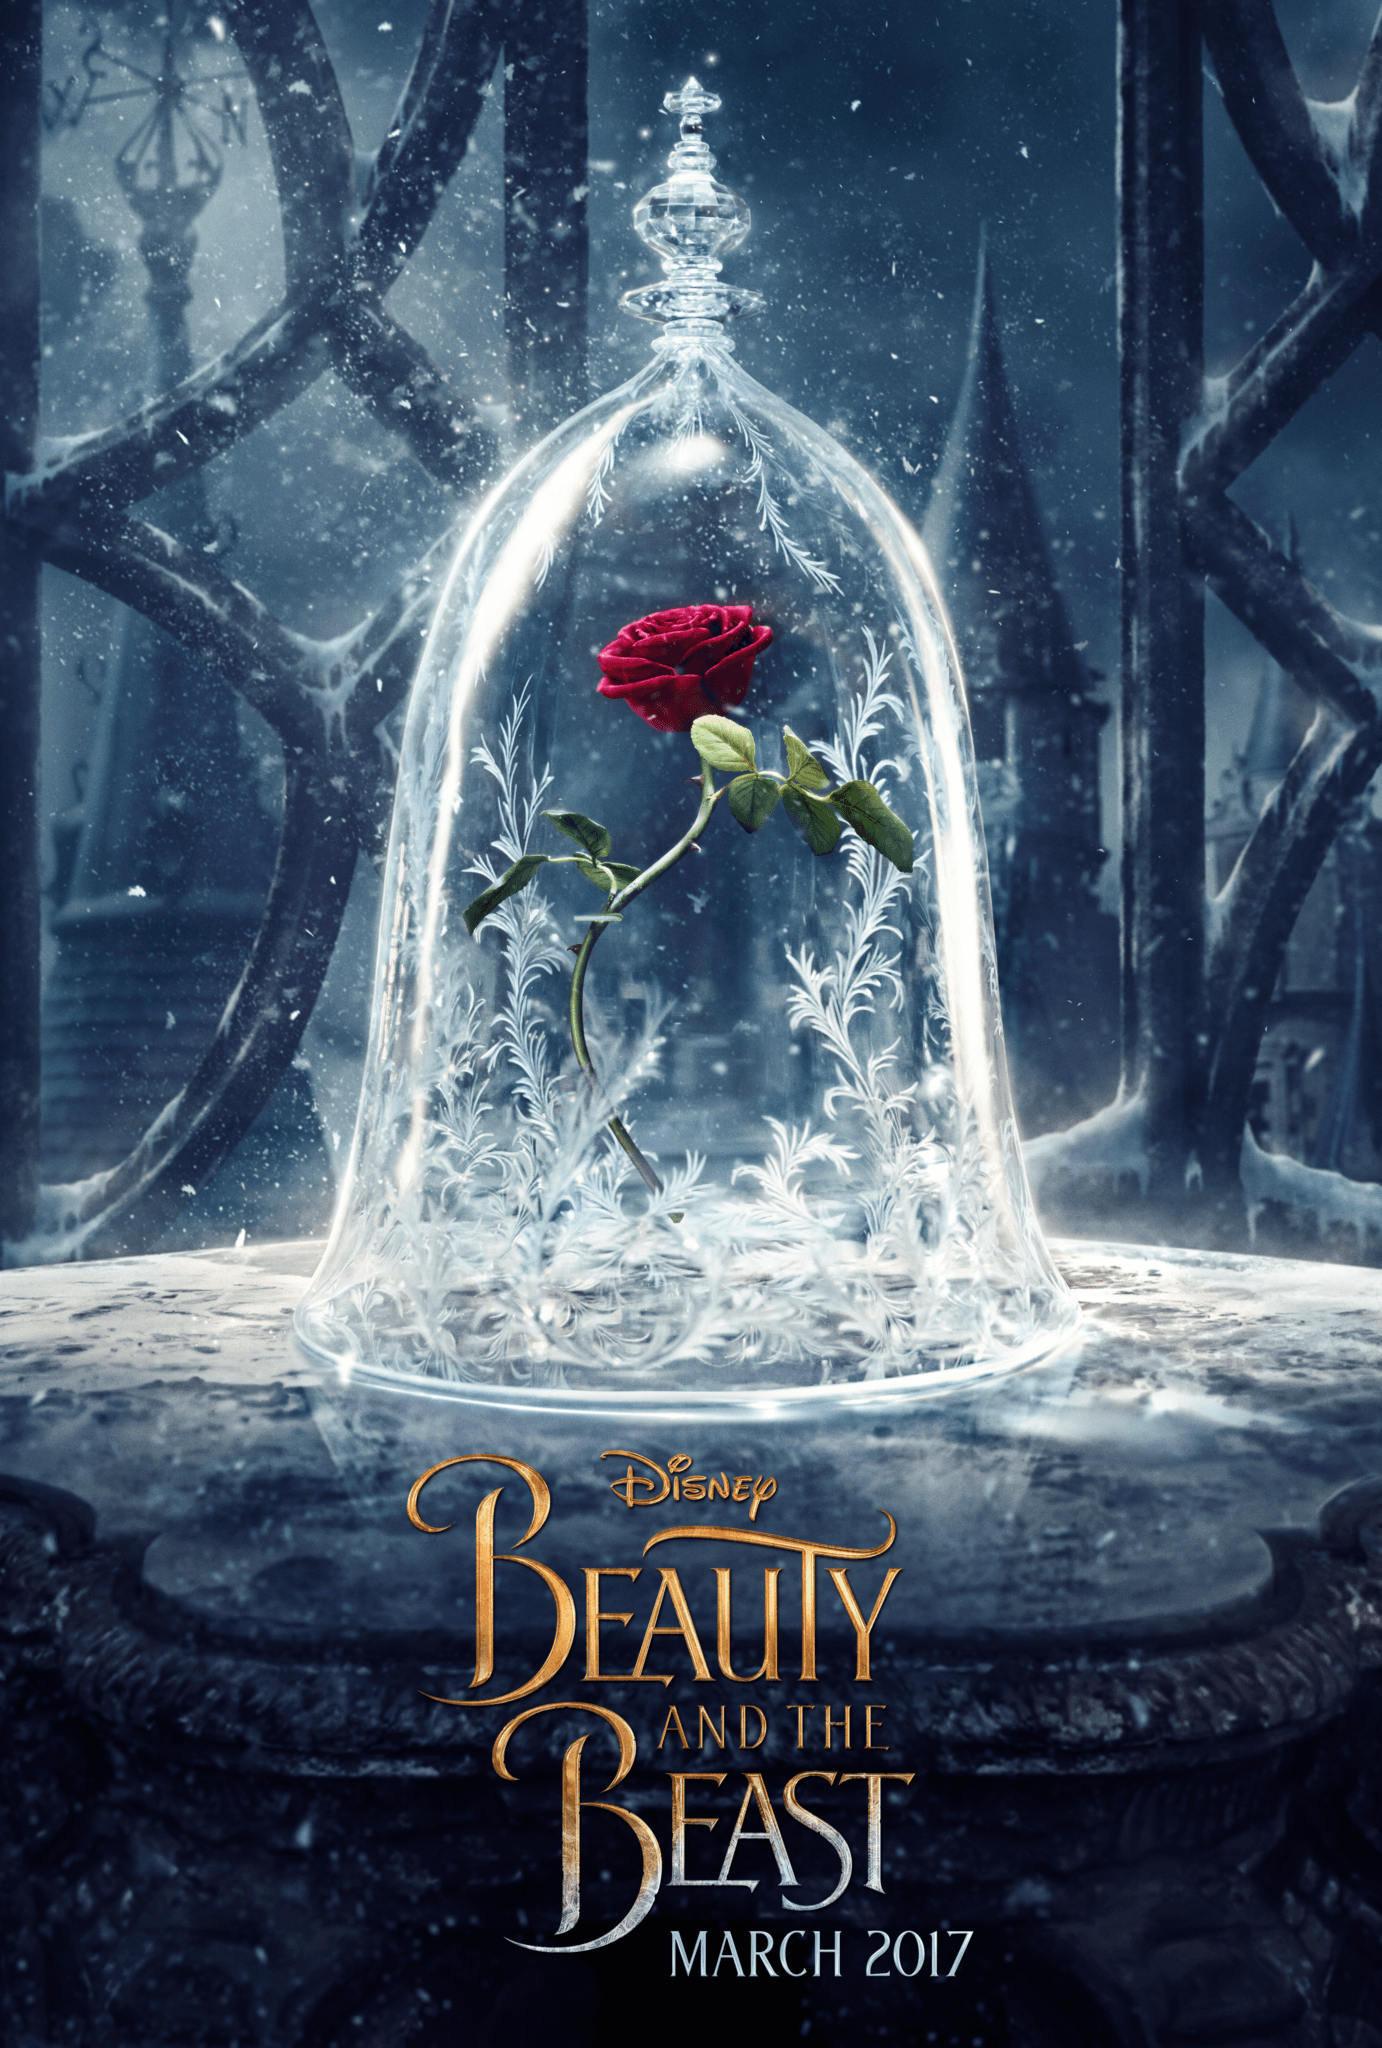 First Look: Beauty and the Beast Poster